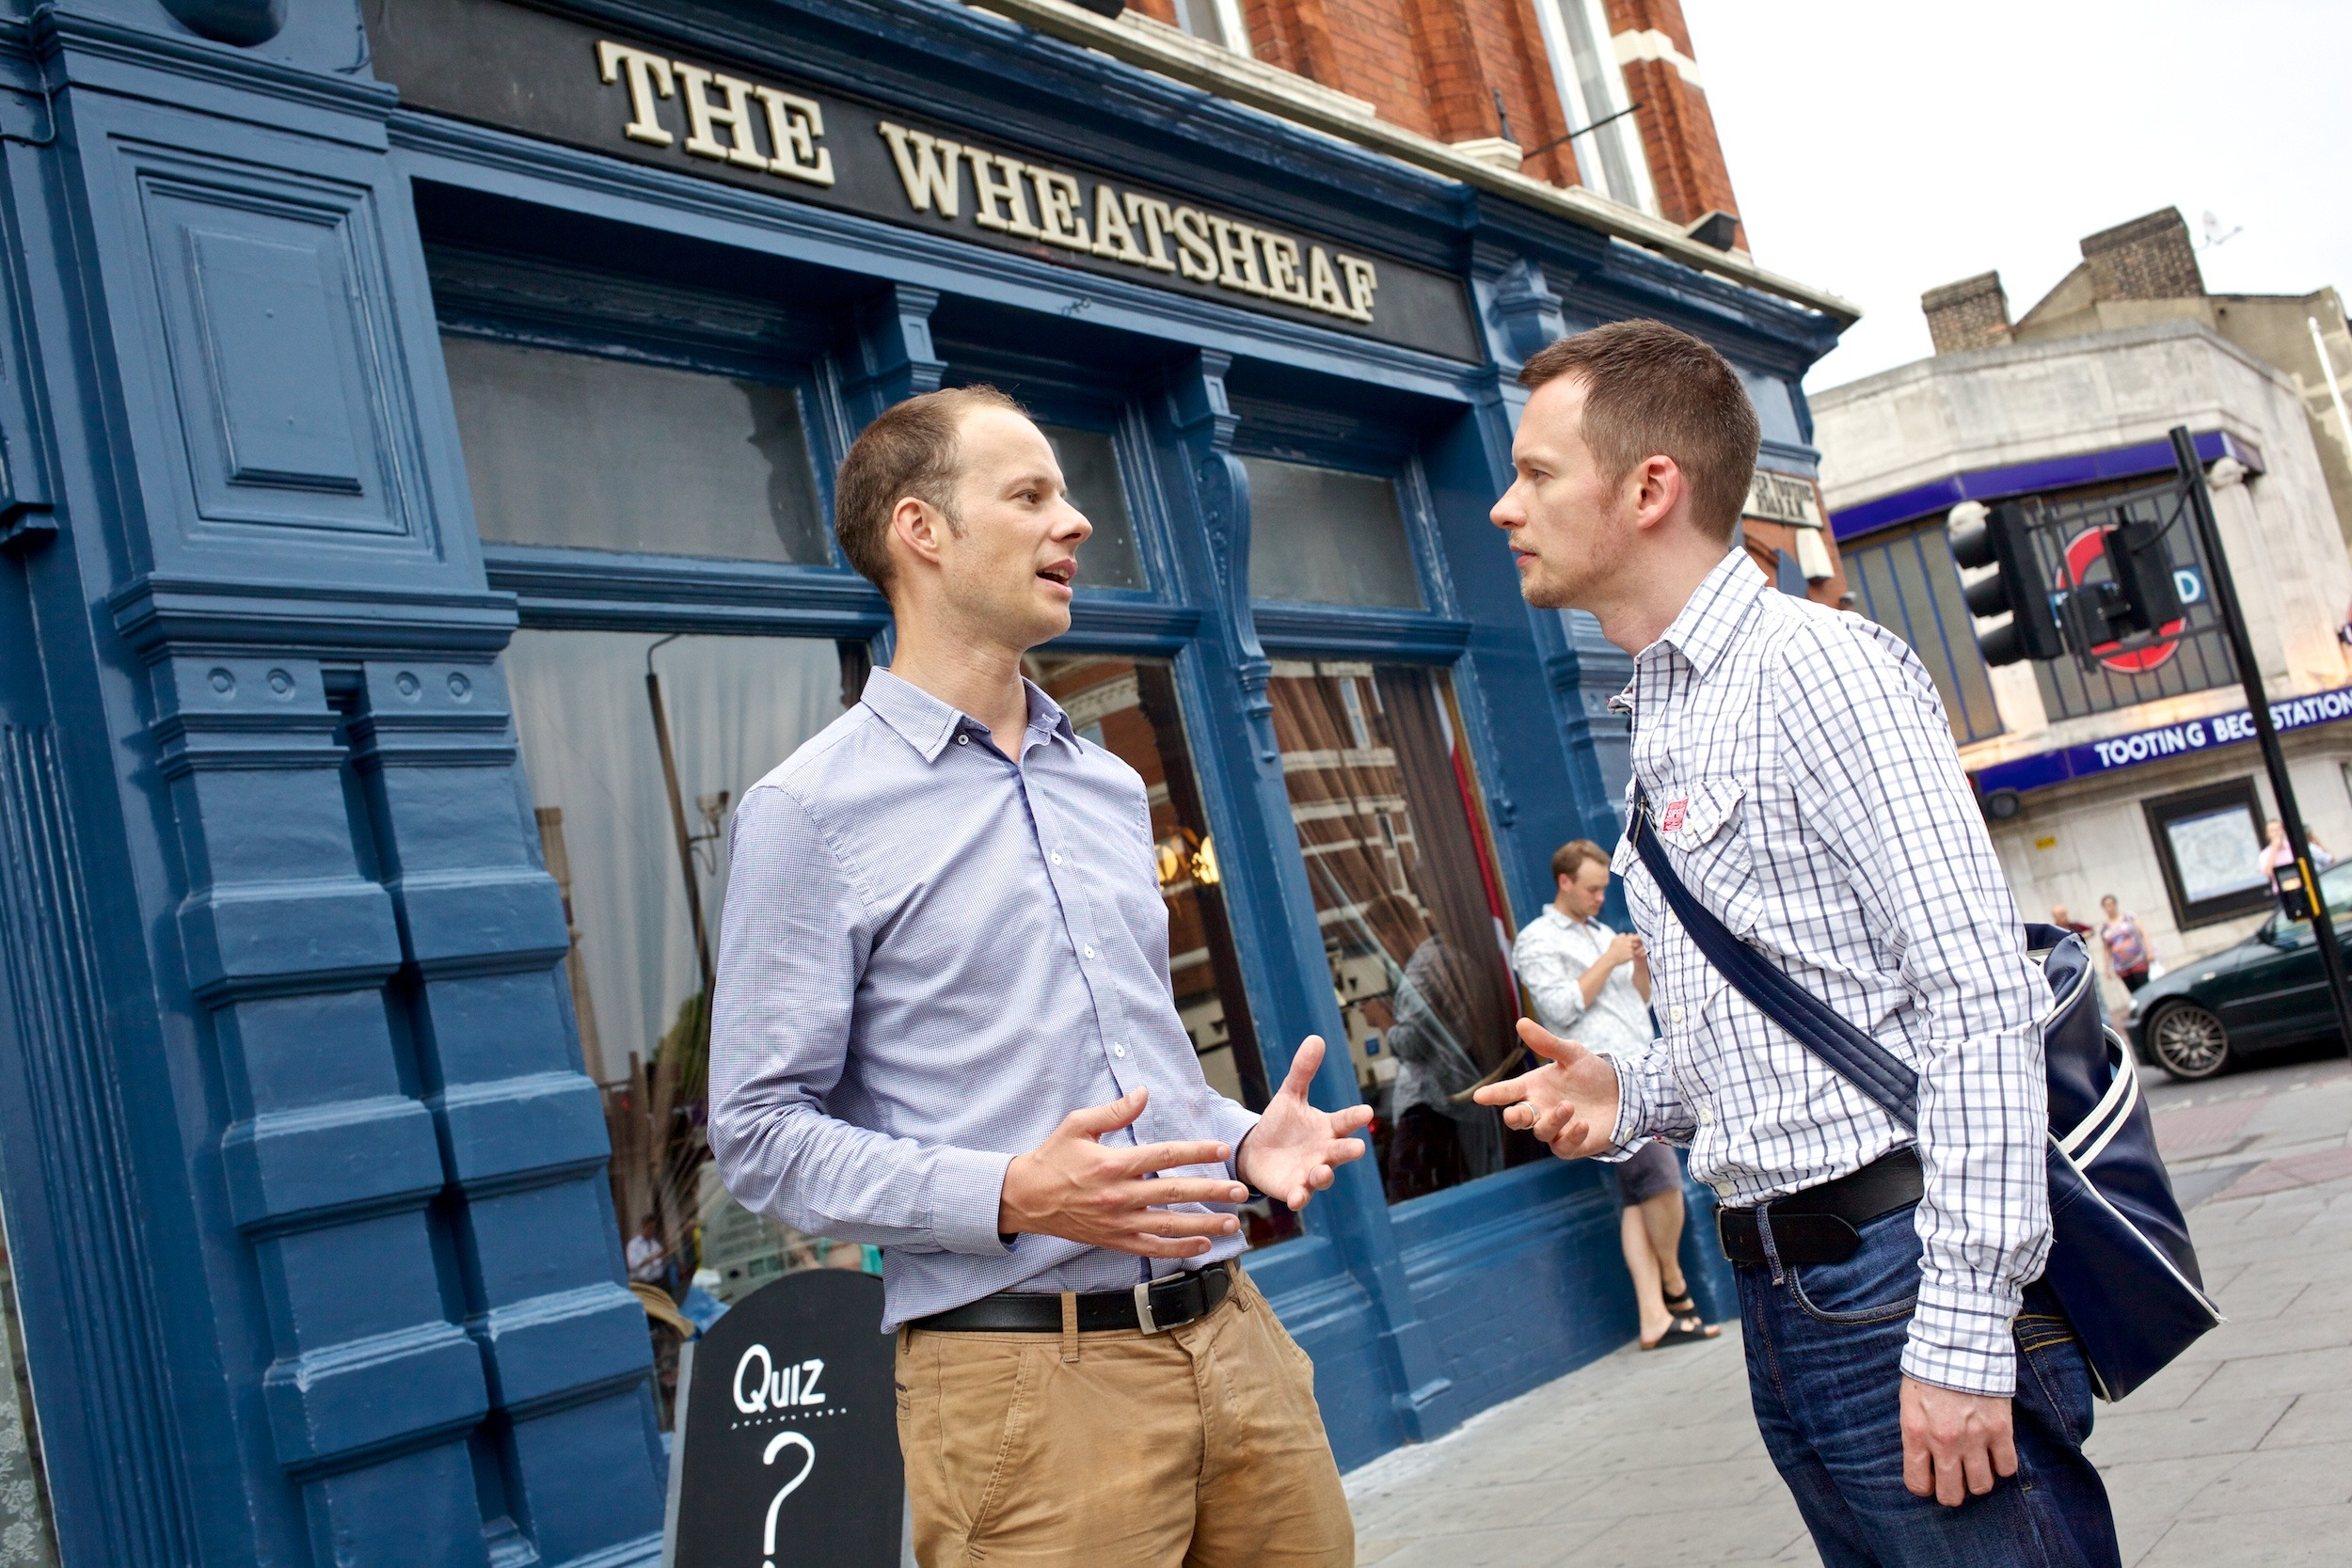 Dan Watkins discusses the Wheatsheaf's future with Tooting Councillor